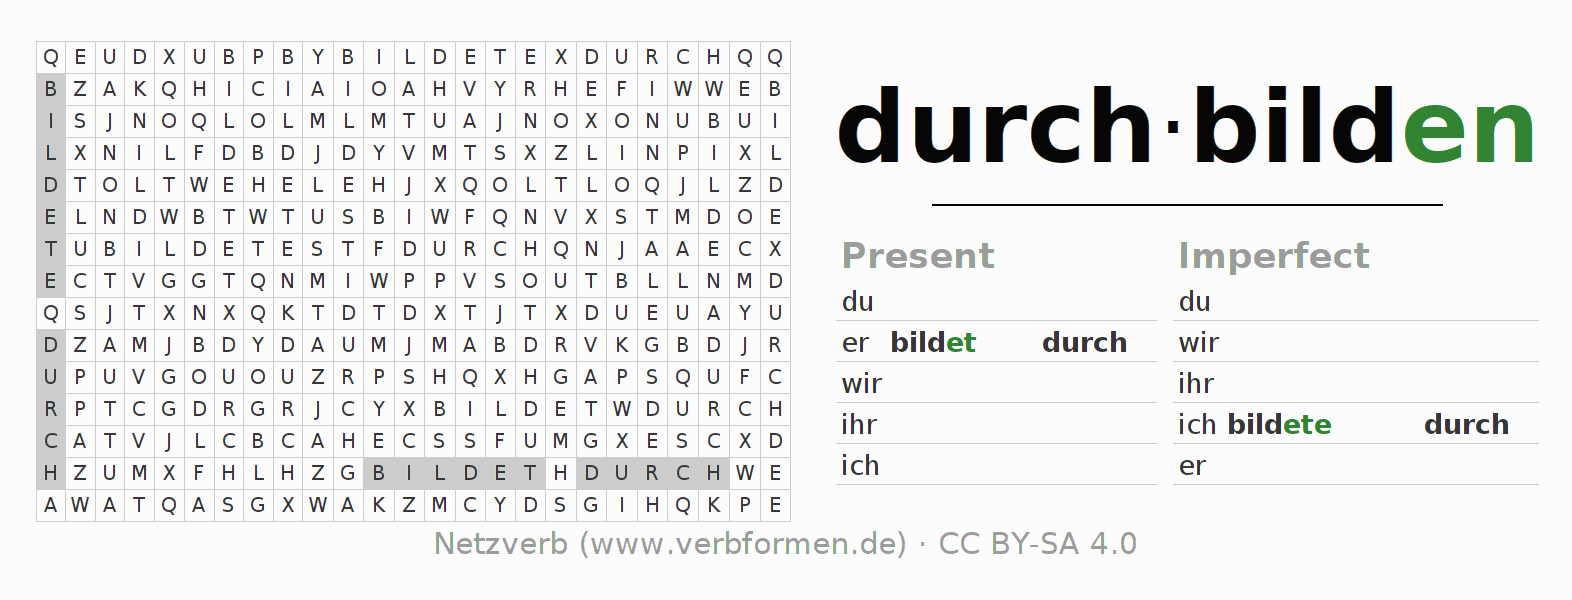 Word search puzzle for the conjugation of the verb durchbilden